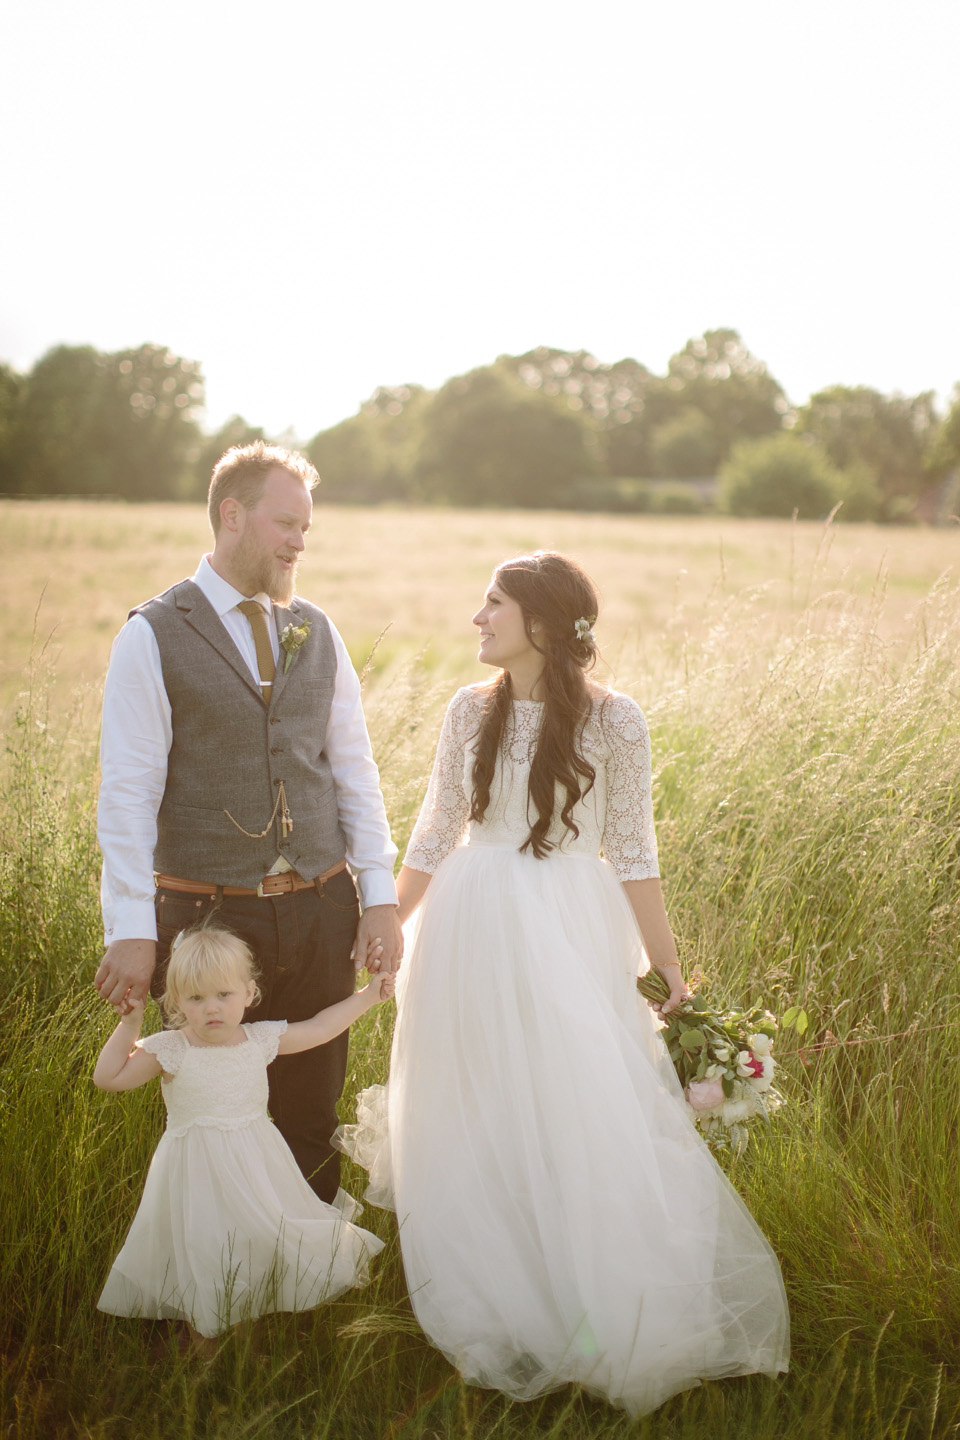 A Handmade And Eco Friendly Pagan Handfasting On The Family Farm